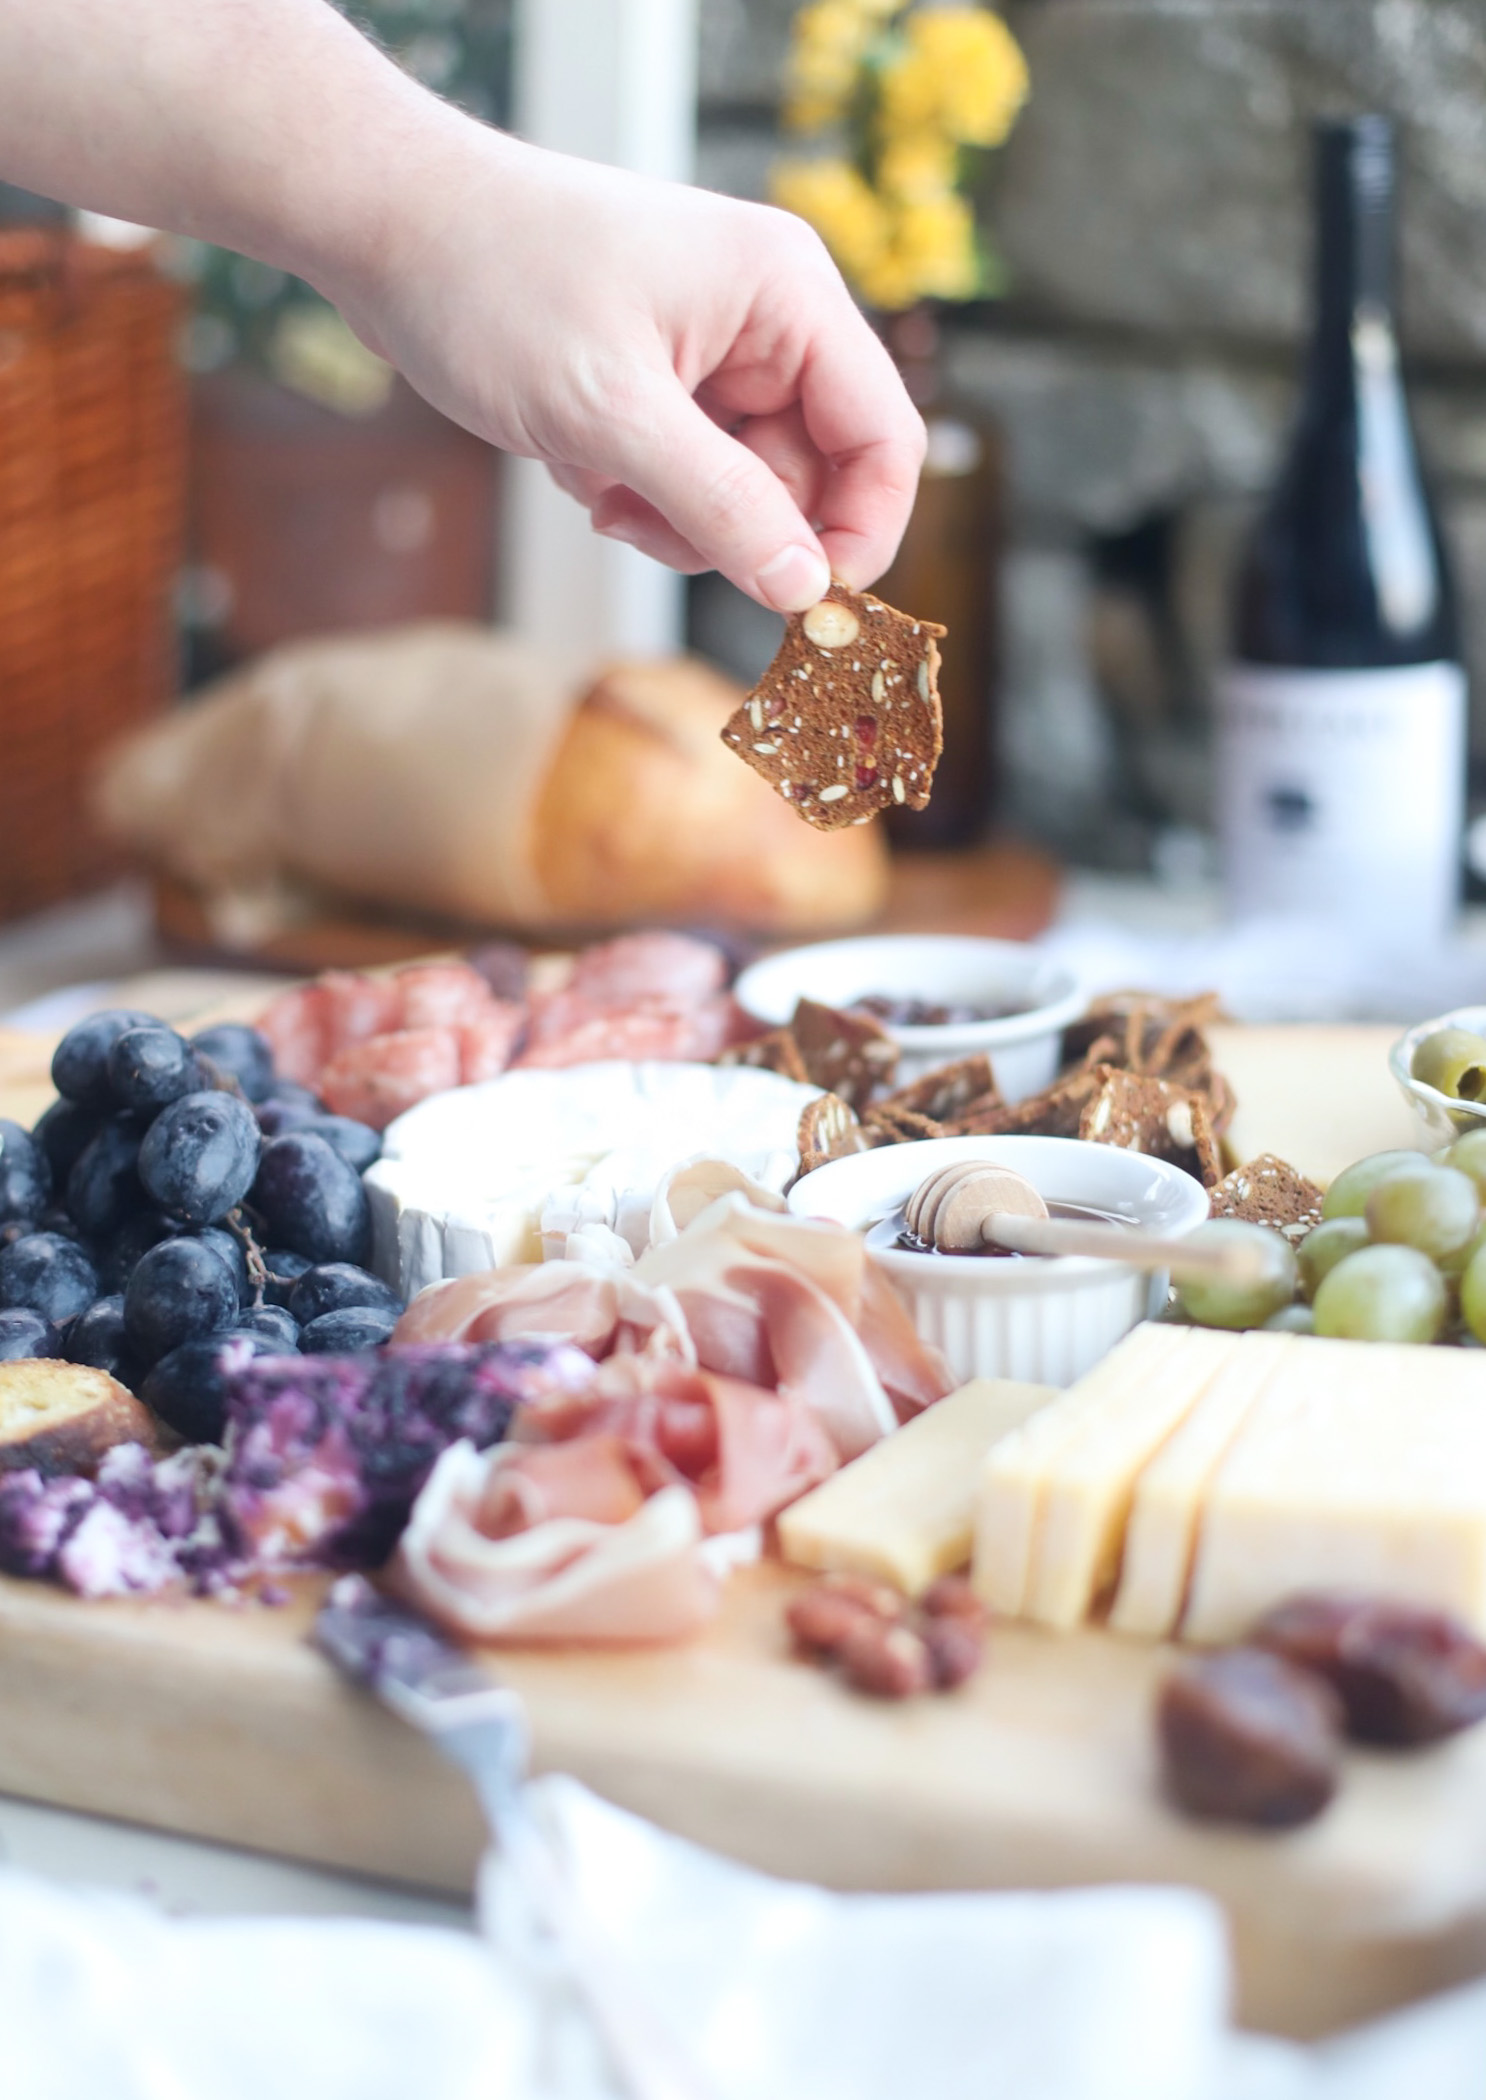 person picking food from a Charcuterie